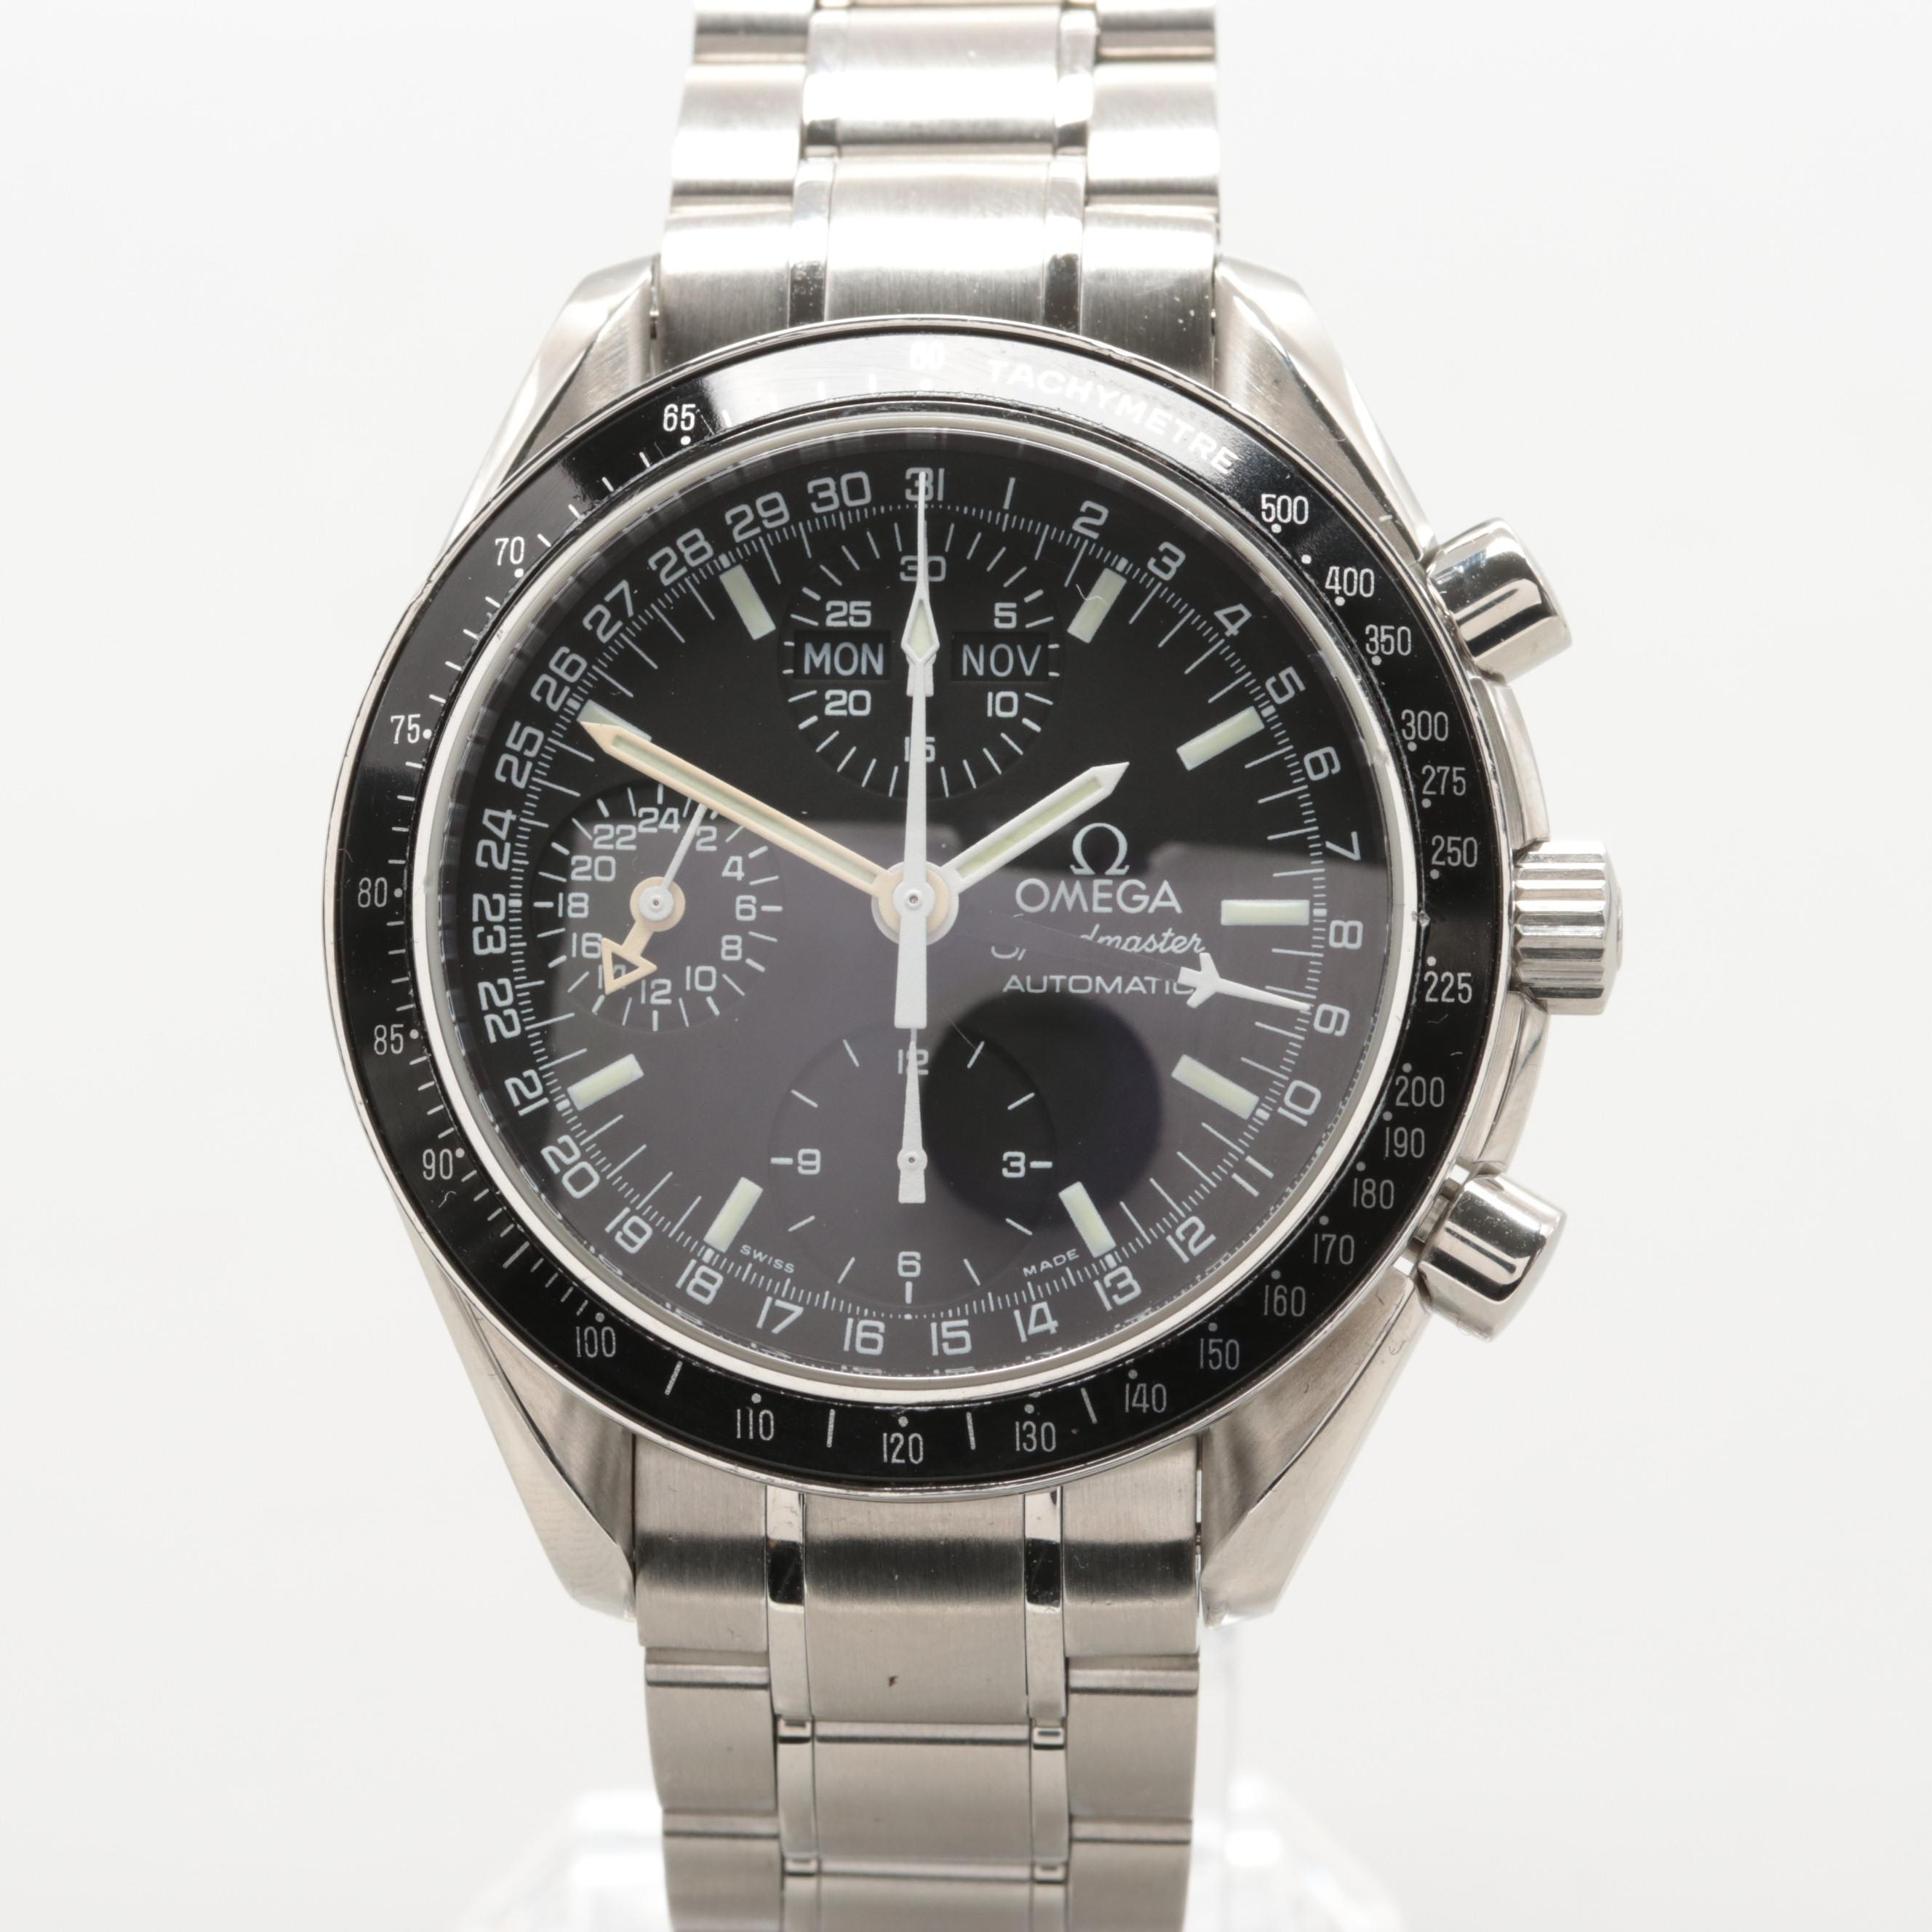 Omega Speedmaster Chronograph Mark 40 Triple Calendar Steel Wristwatch